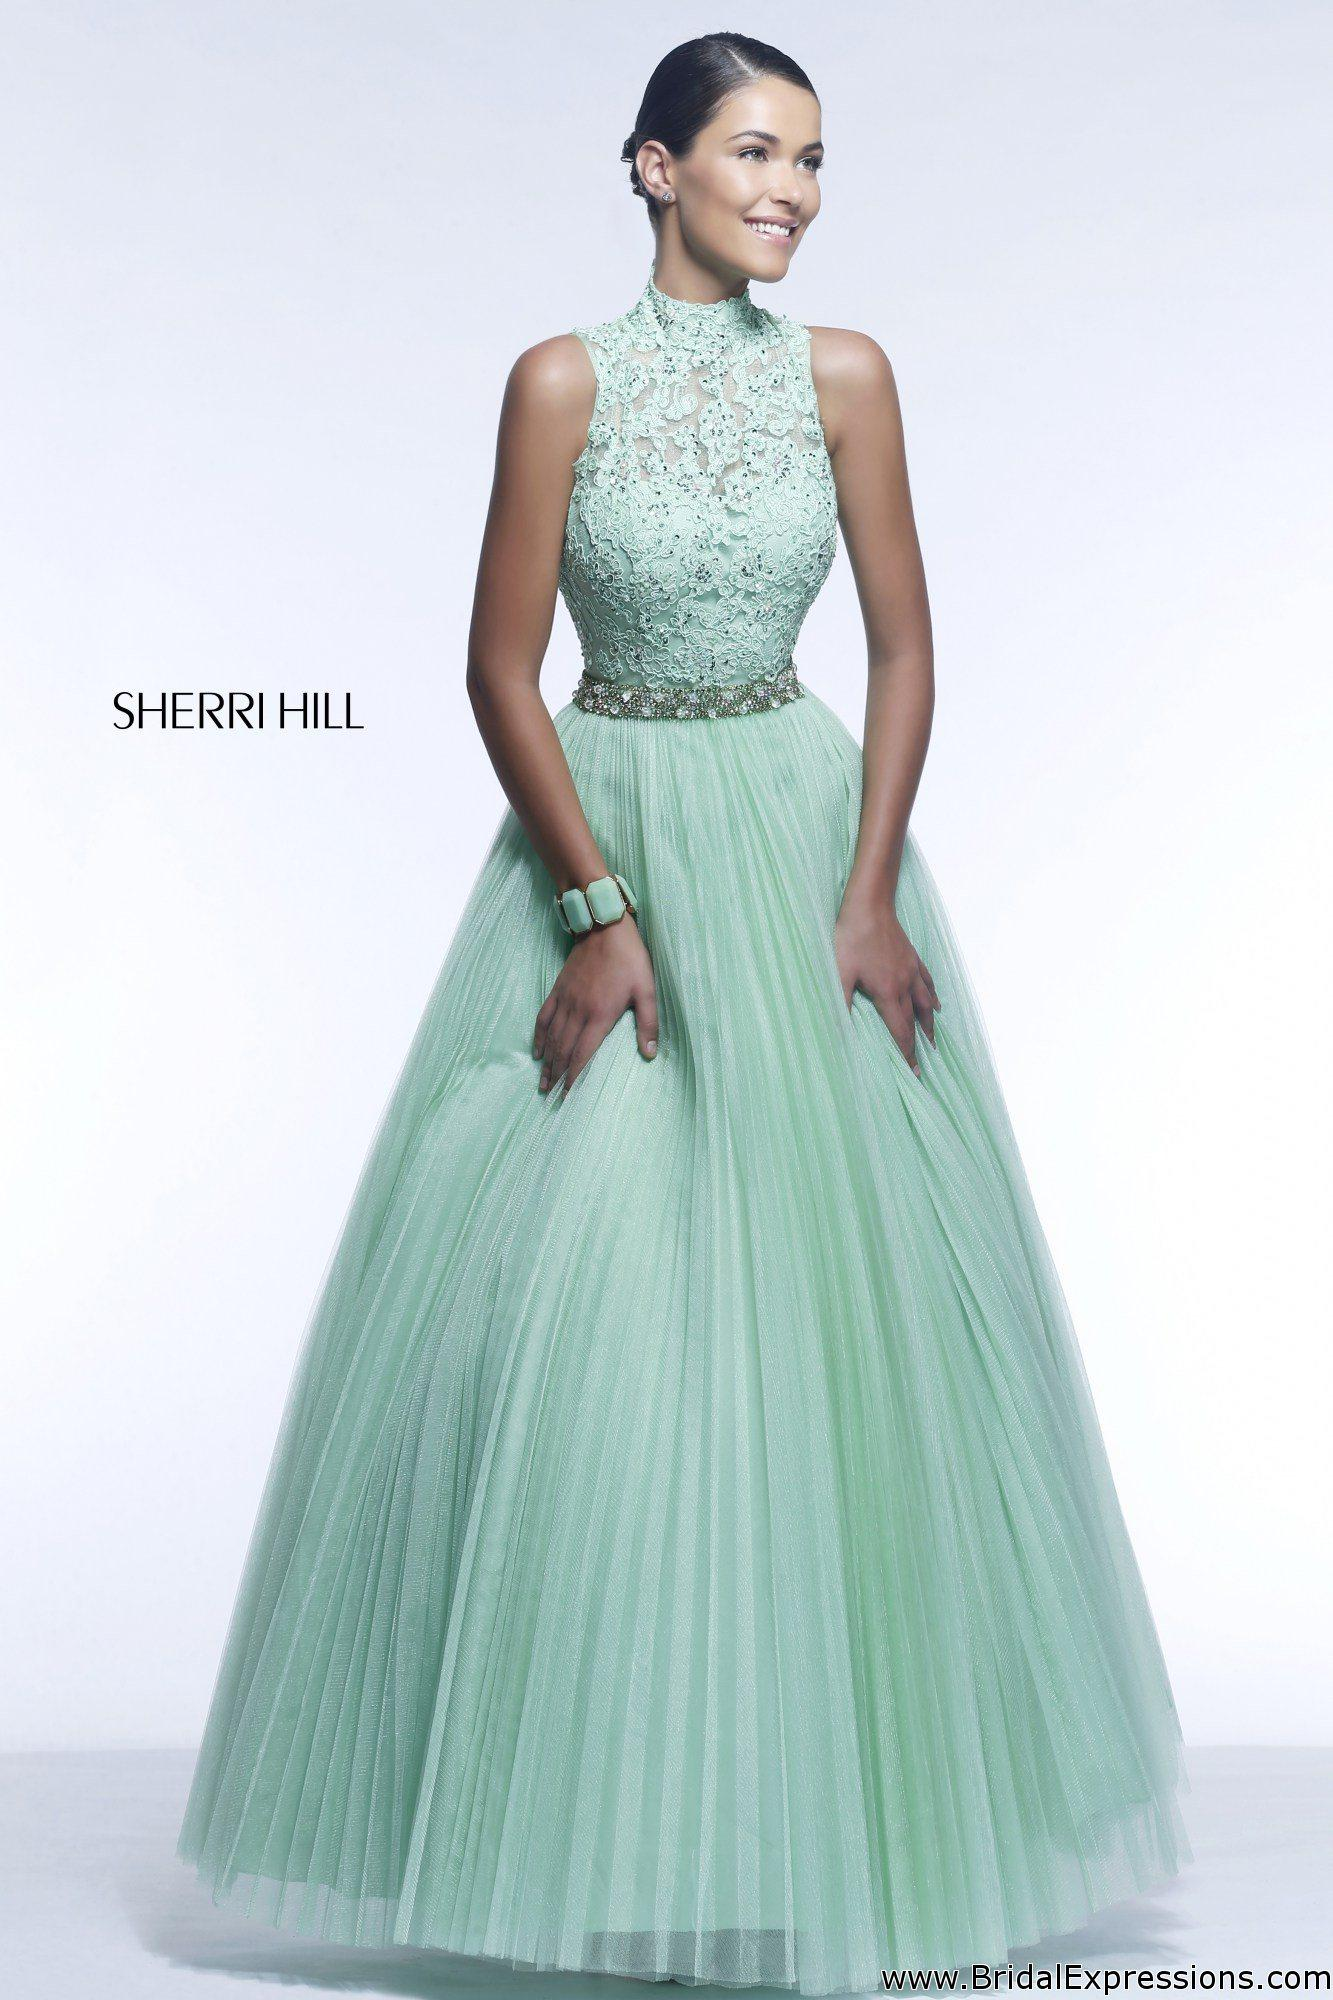 Uk Prom Dresses High Neck - Eligent Prom Dresses